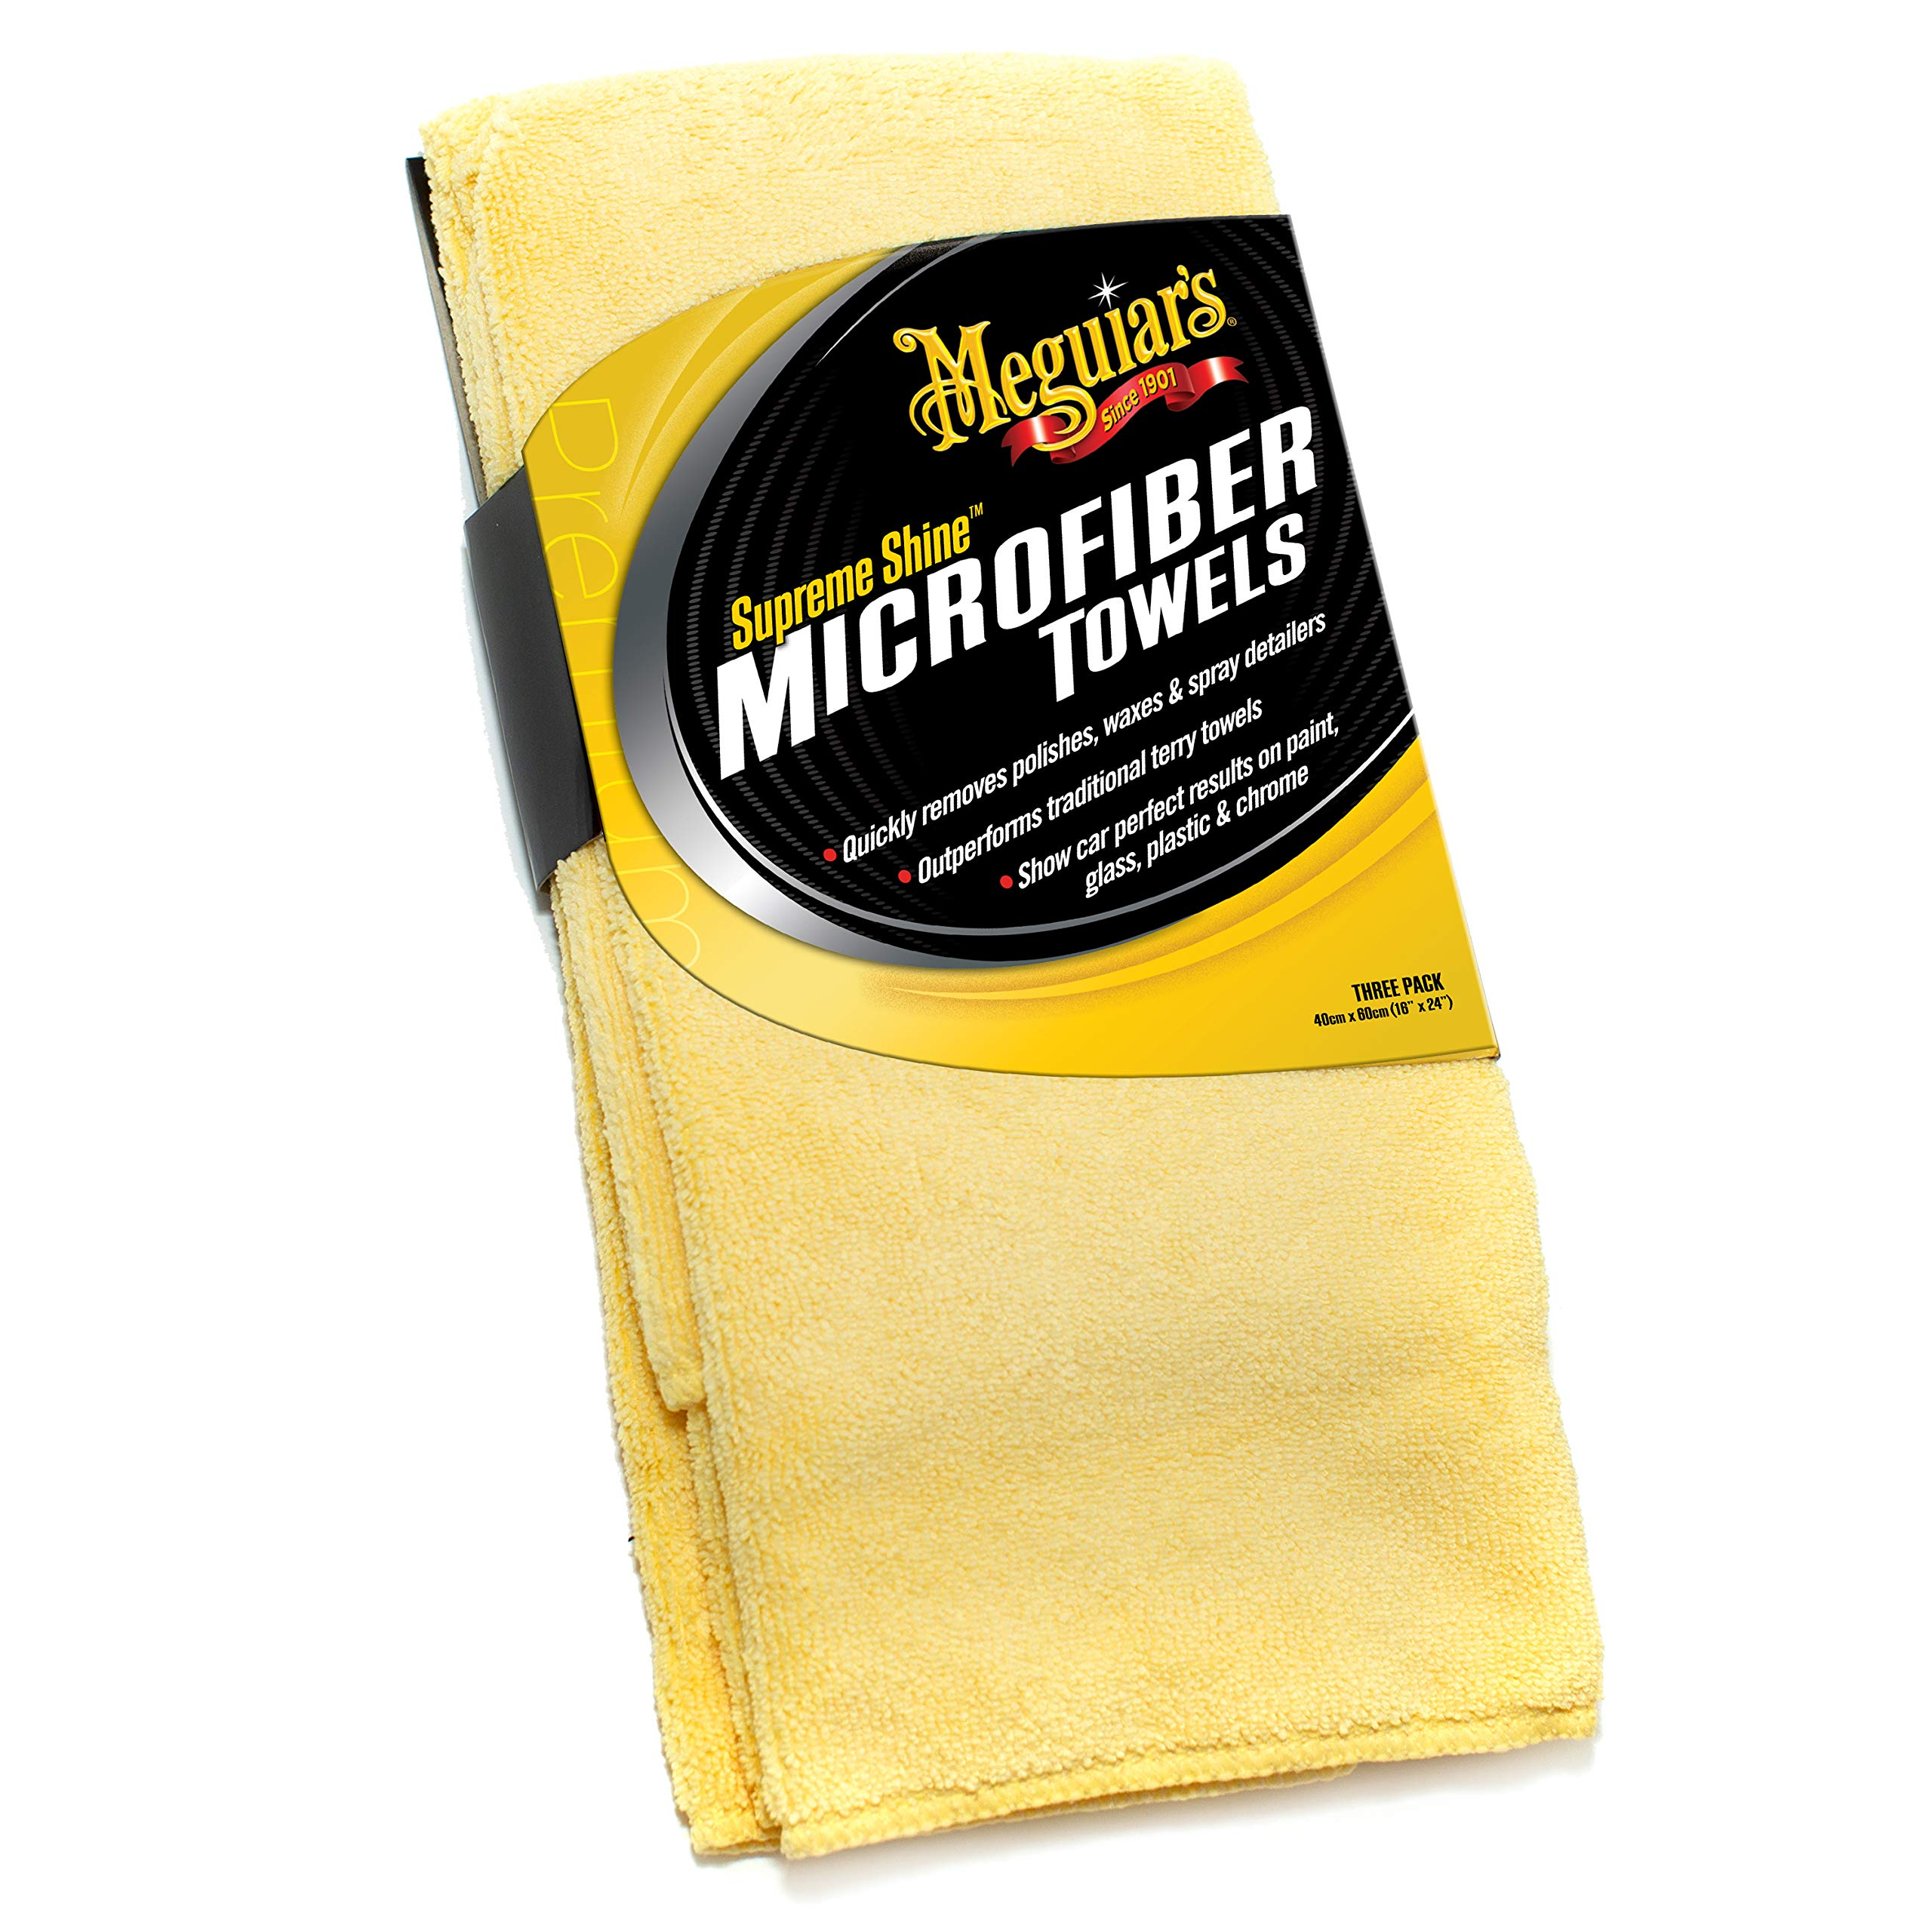 Meguiar's X2020 Supreme Shine Microfiber Towels, Pack of 3,Yellow